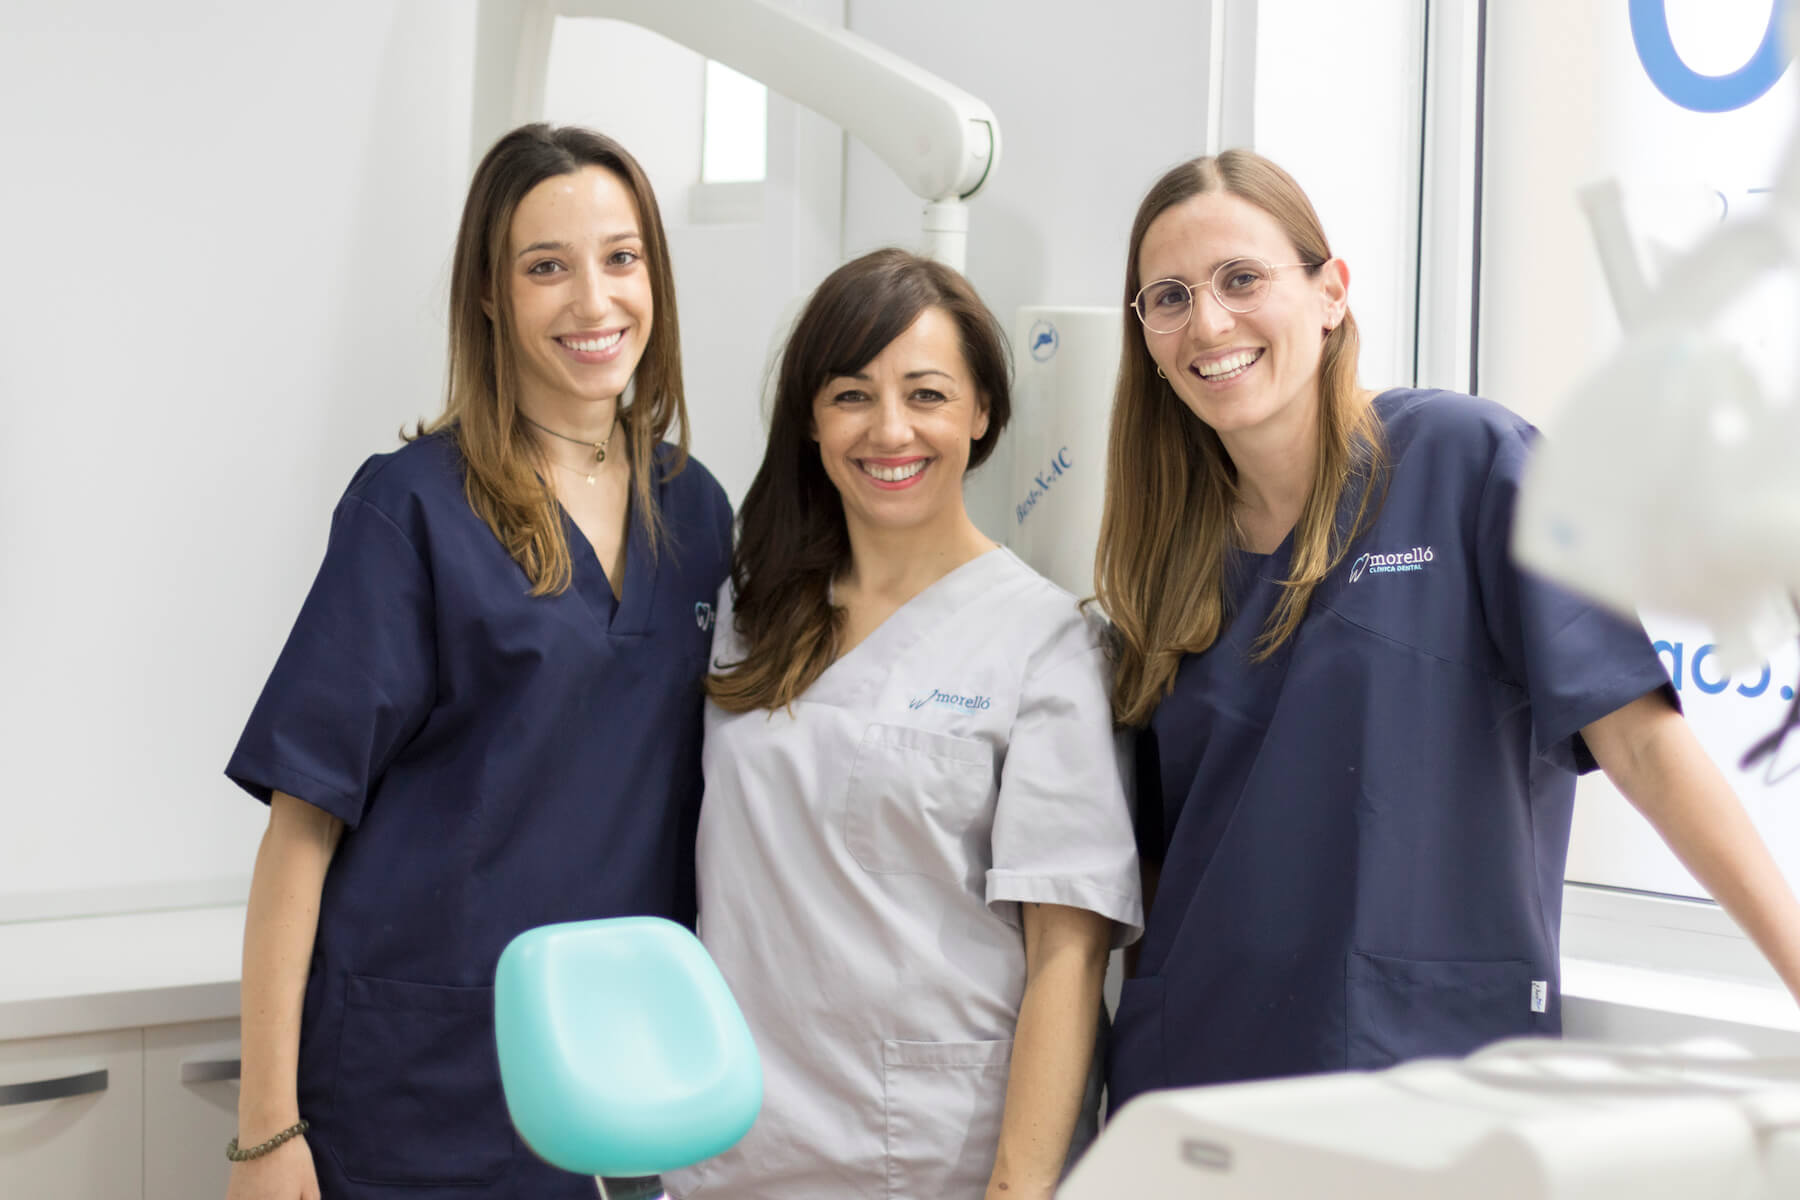 Morello Clínica Dental Esplugues